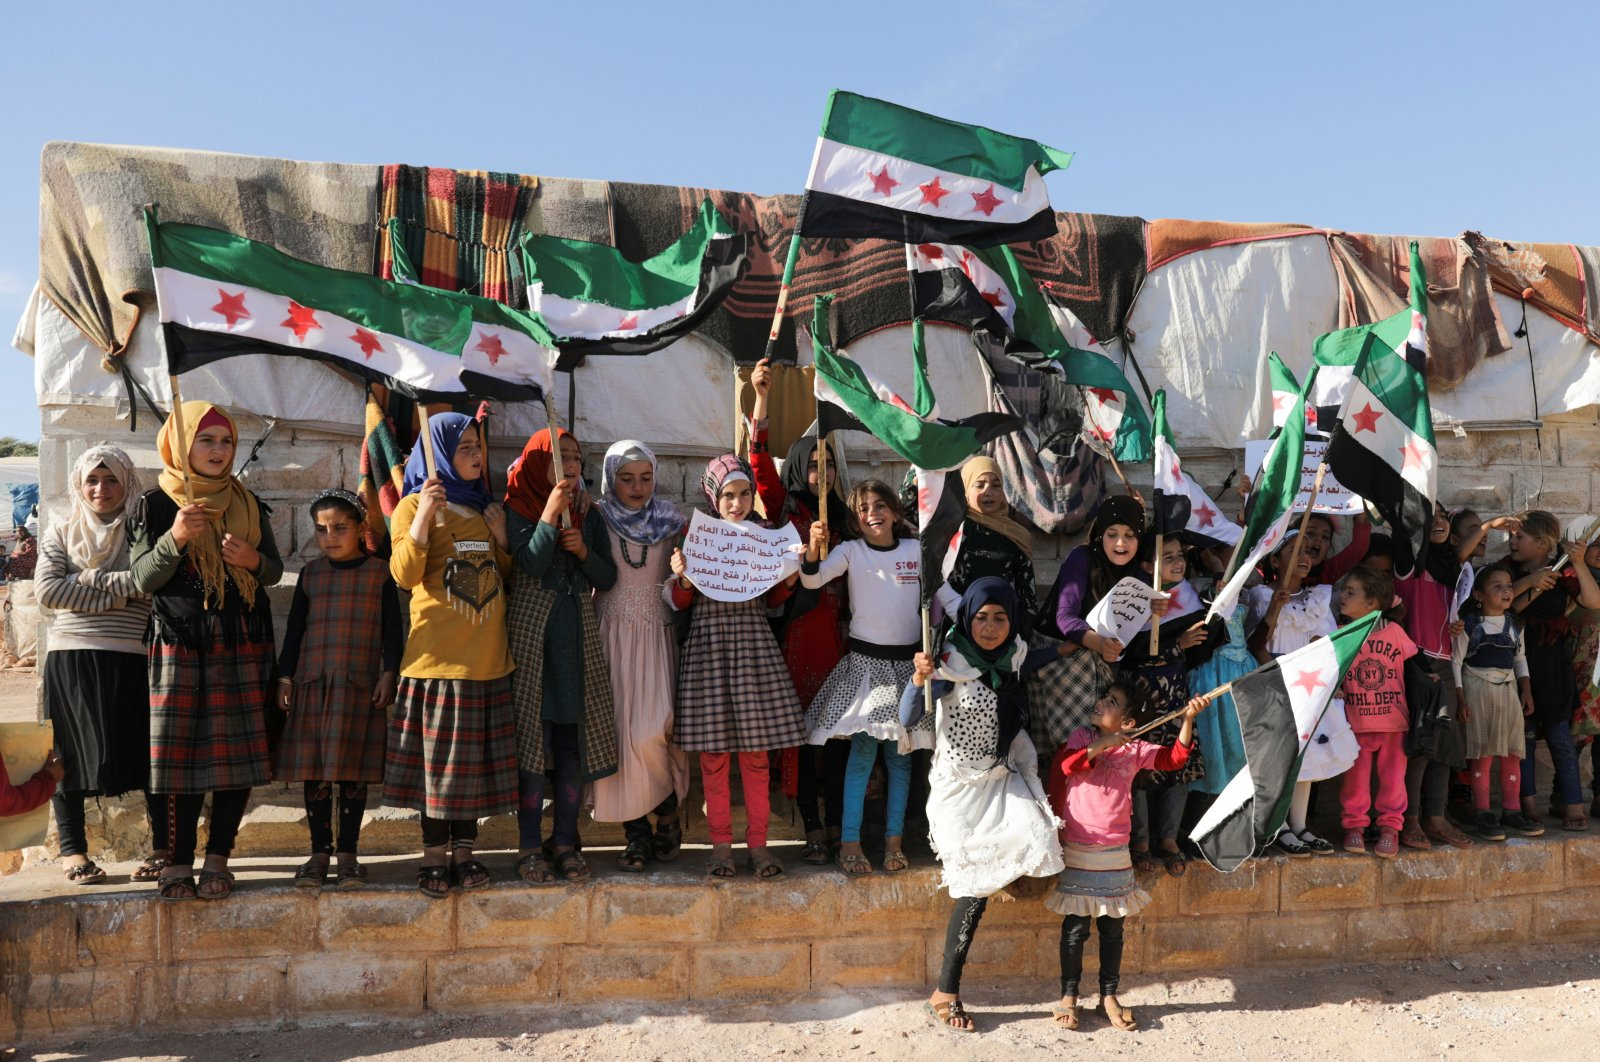 Internally displaced Syrian girls hold Syrian opposition flags during a protest against the closure of Bab al-Hawa crossing in the opposition-held Idlib, northwestern Syria, June 7, 2021. (REUTERS Photo)